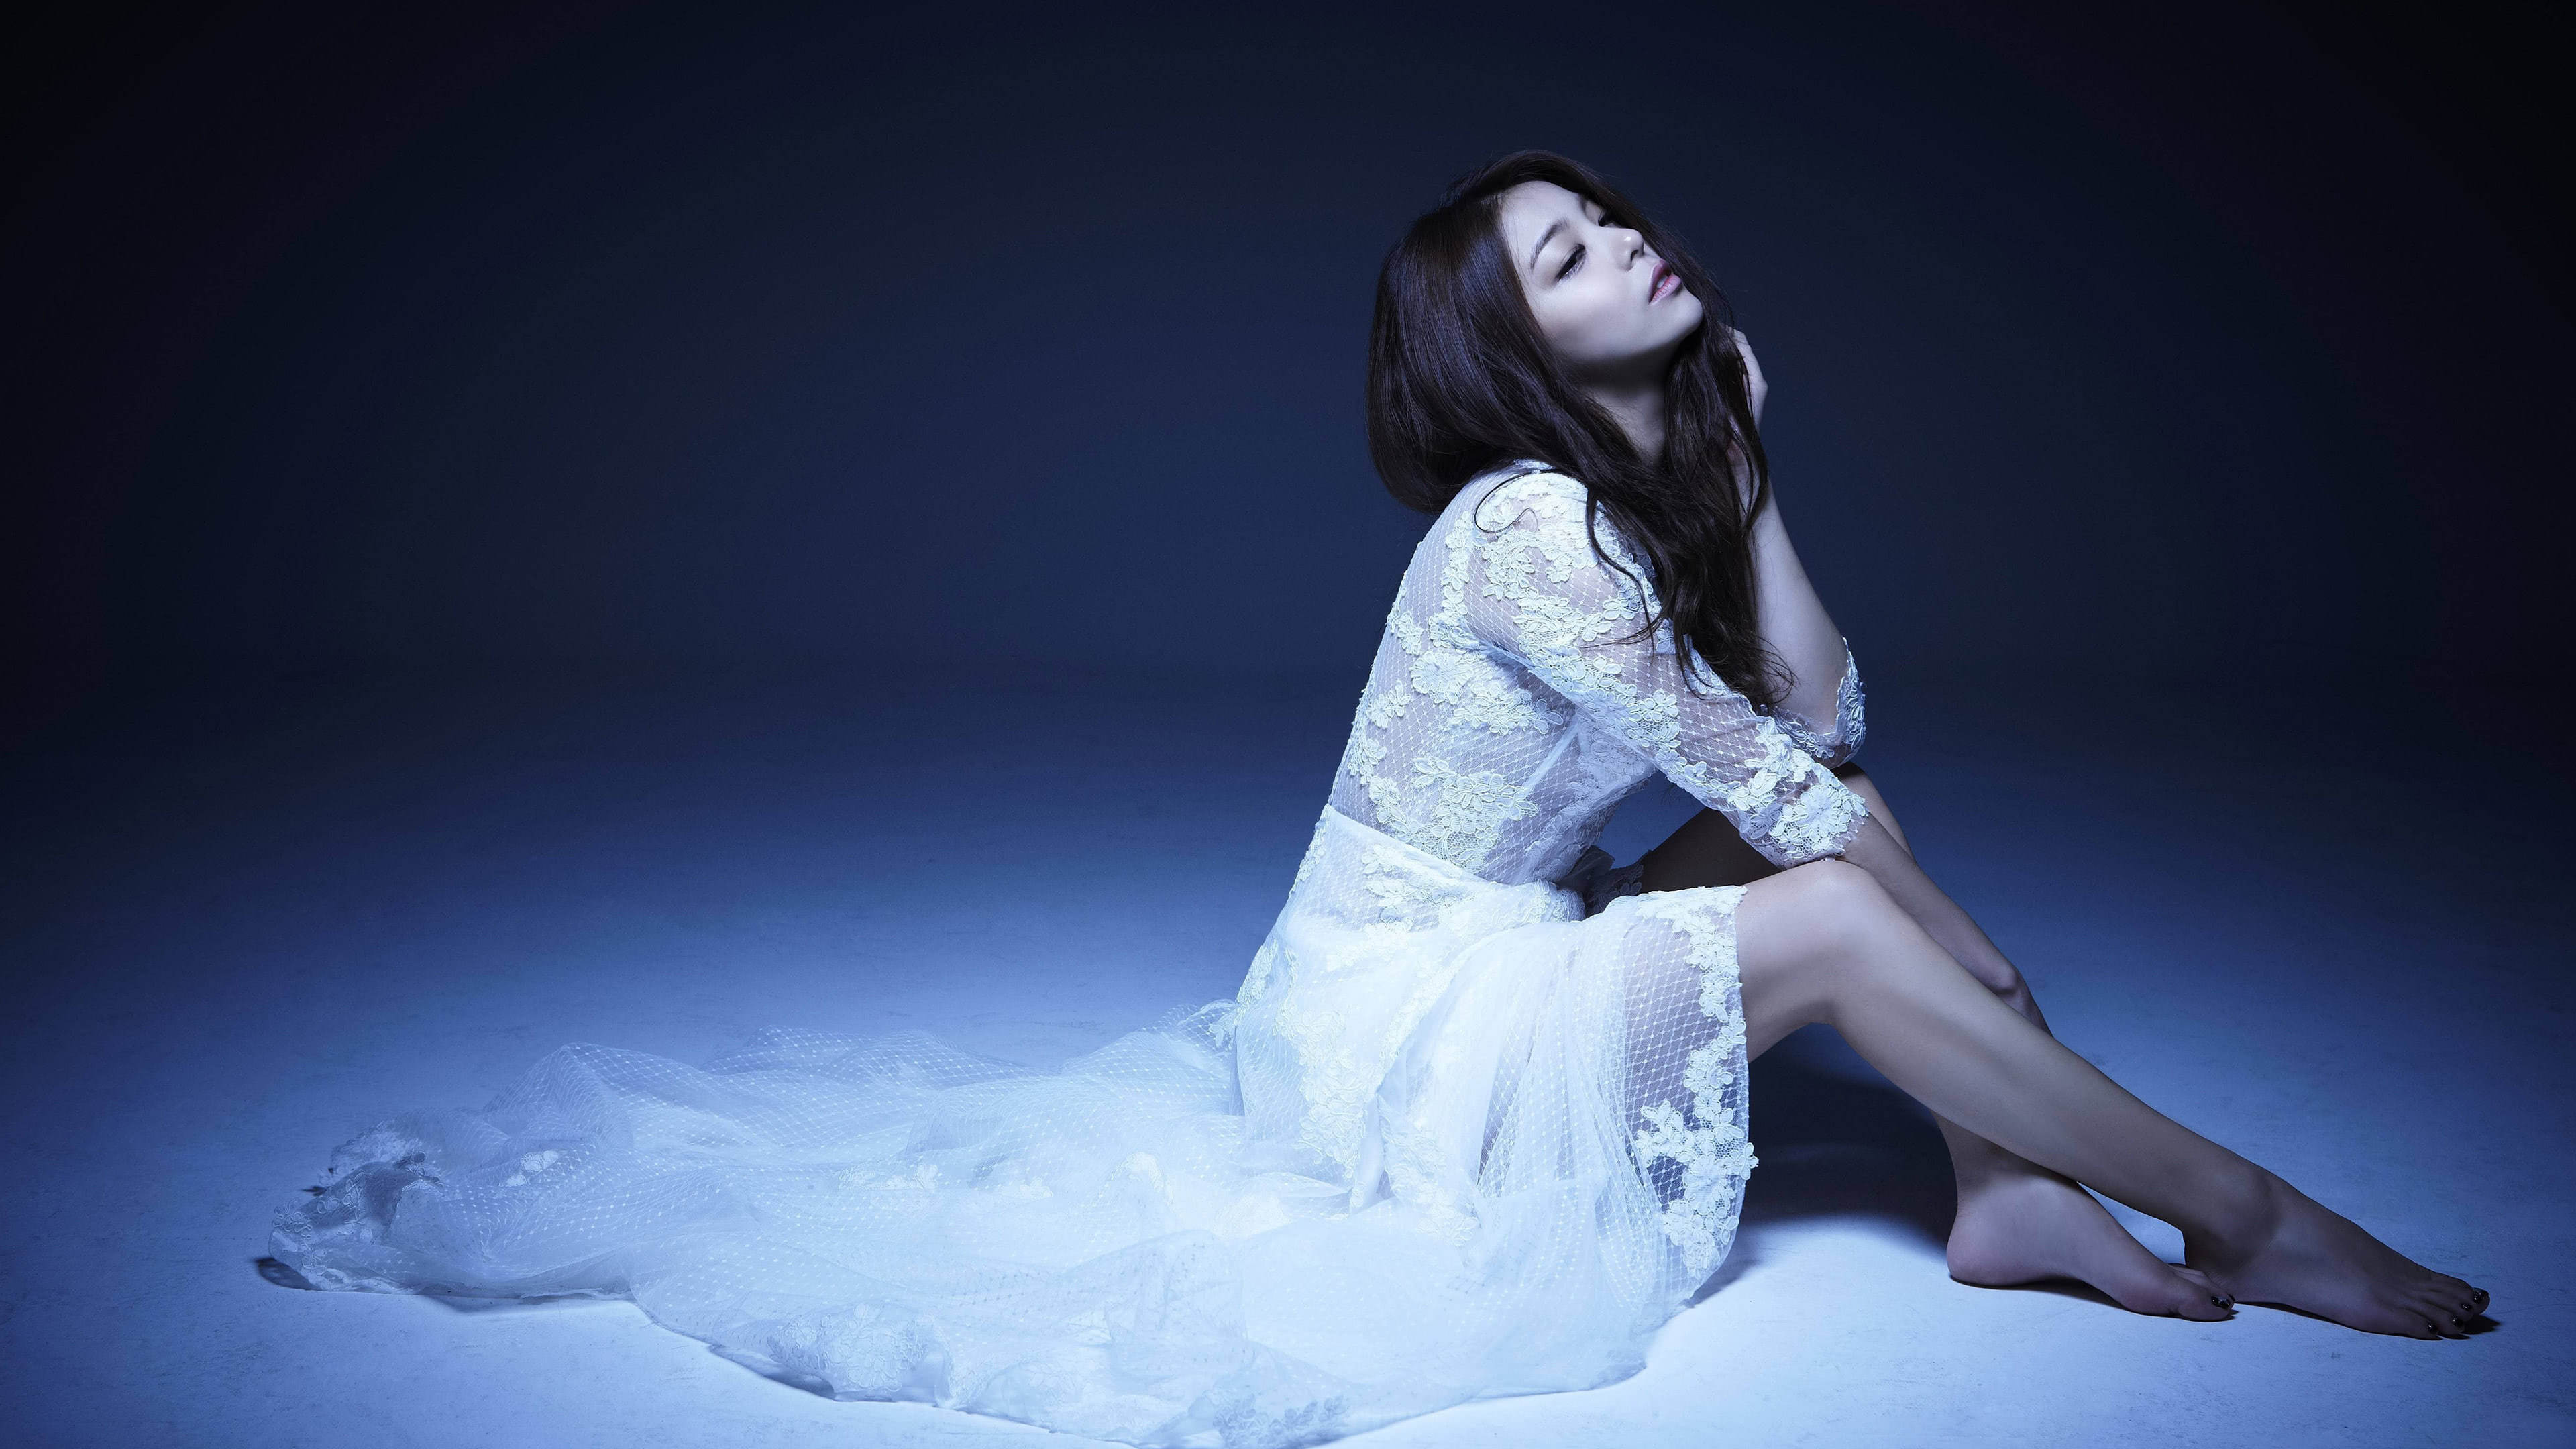 ailee amy lee photoshoot uhd 4k wallpaper